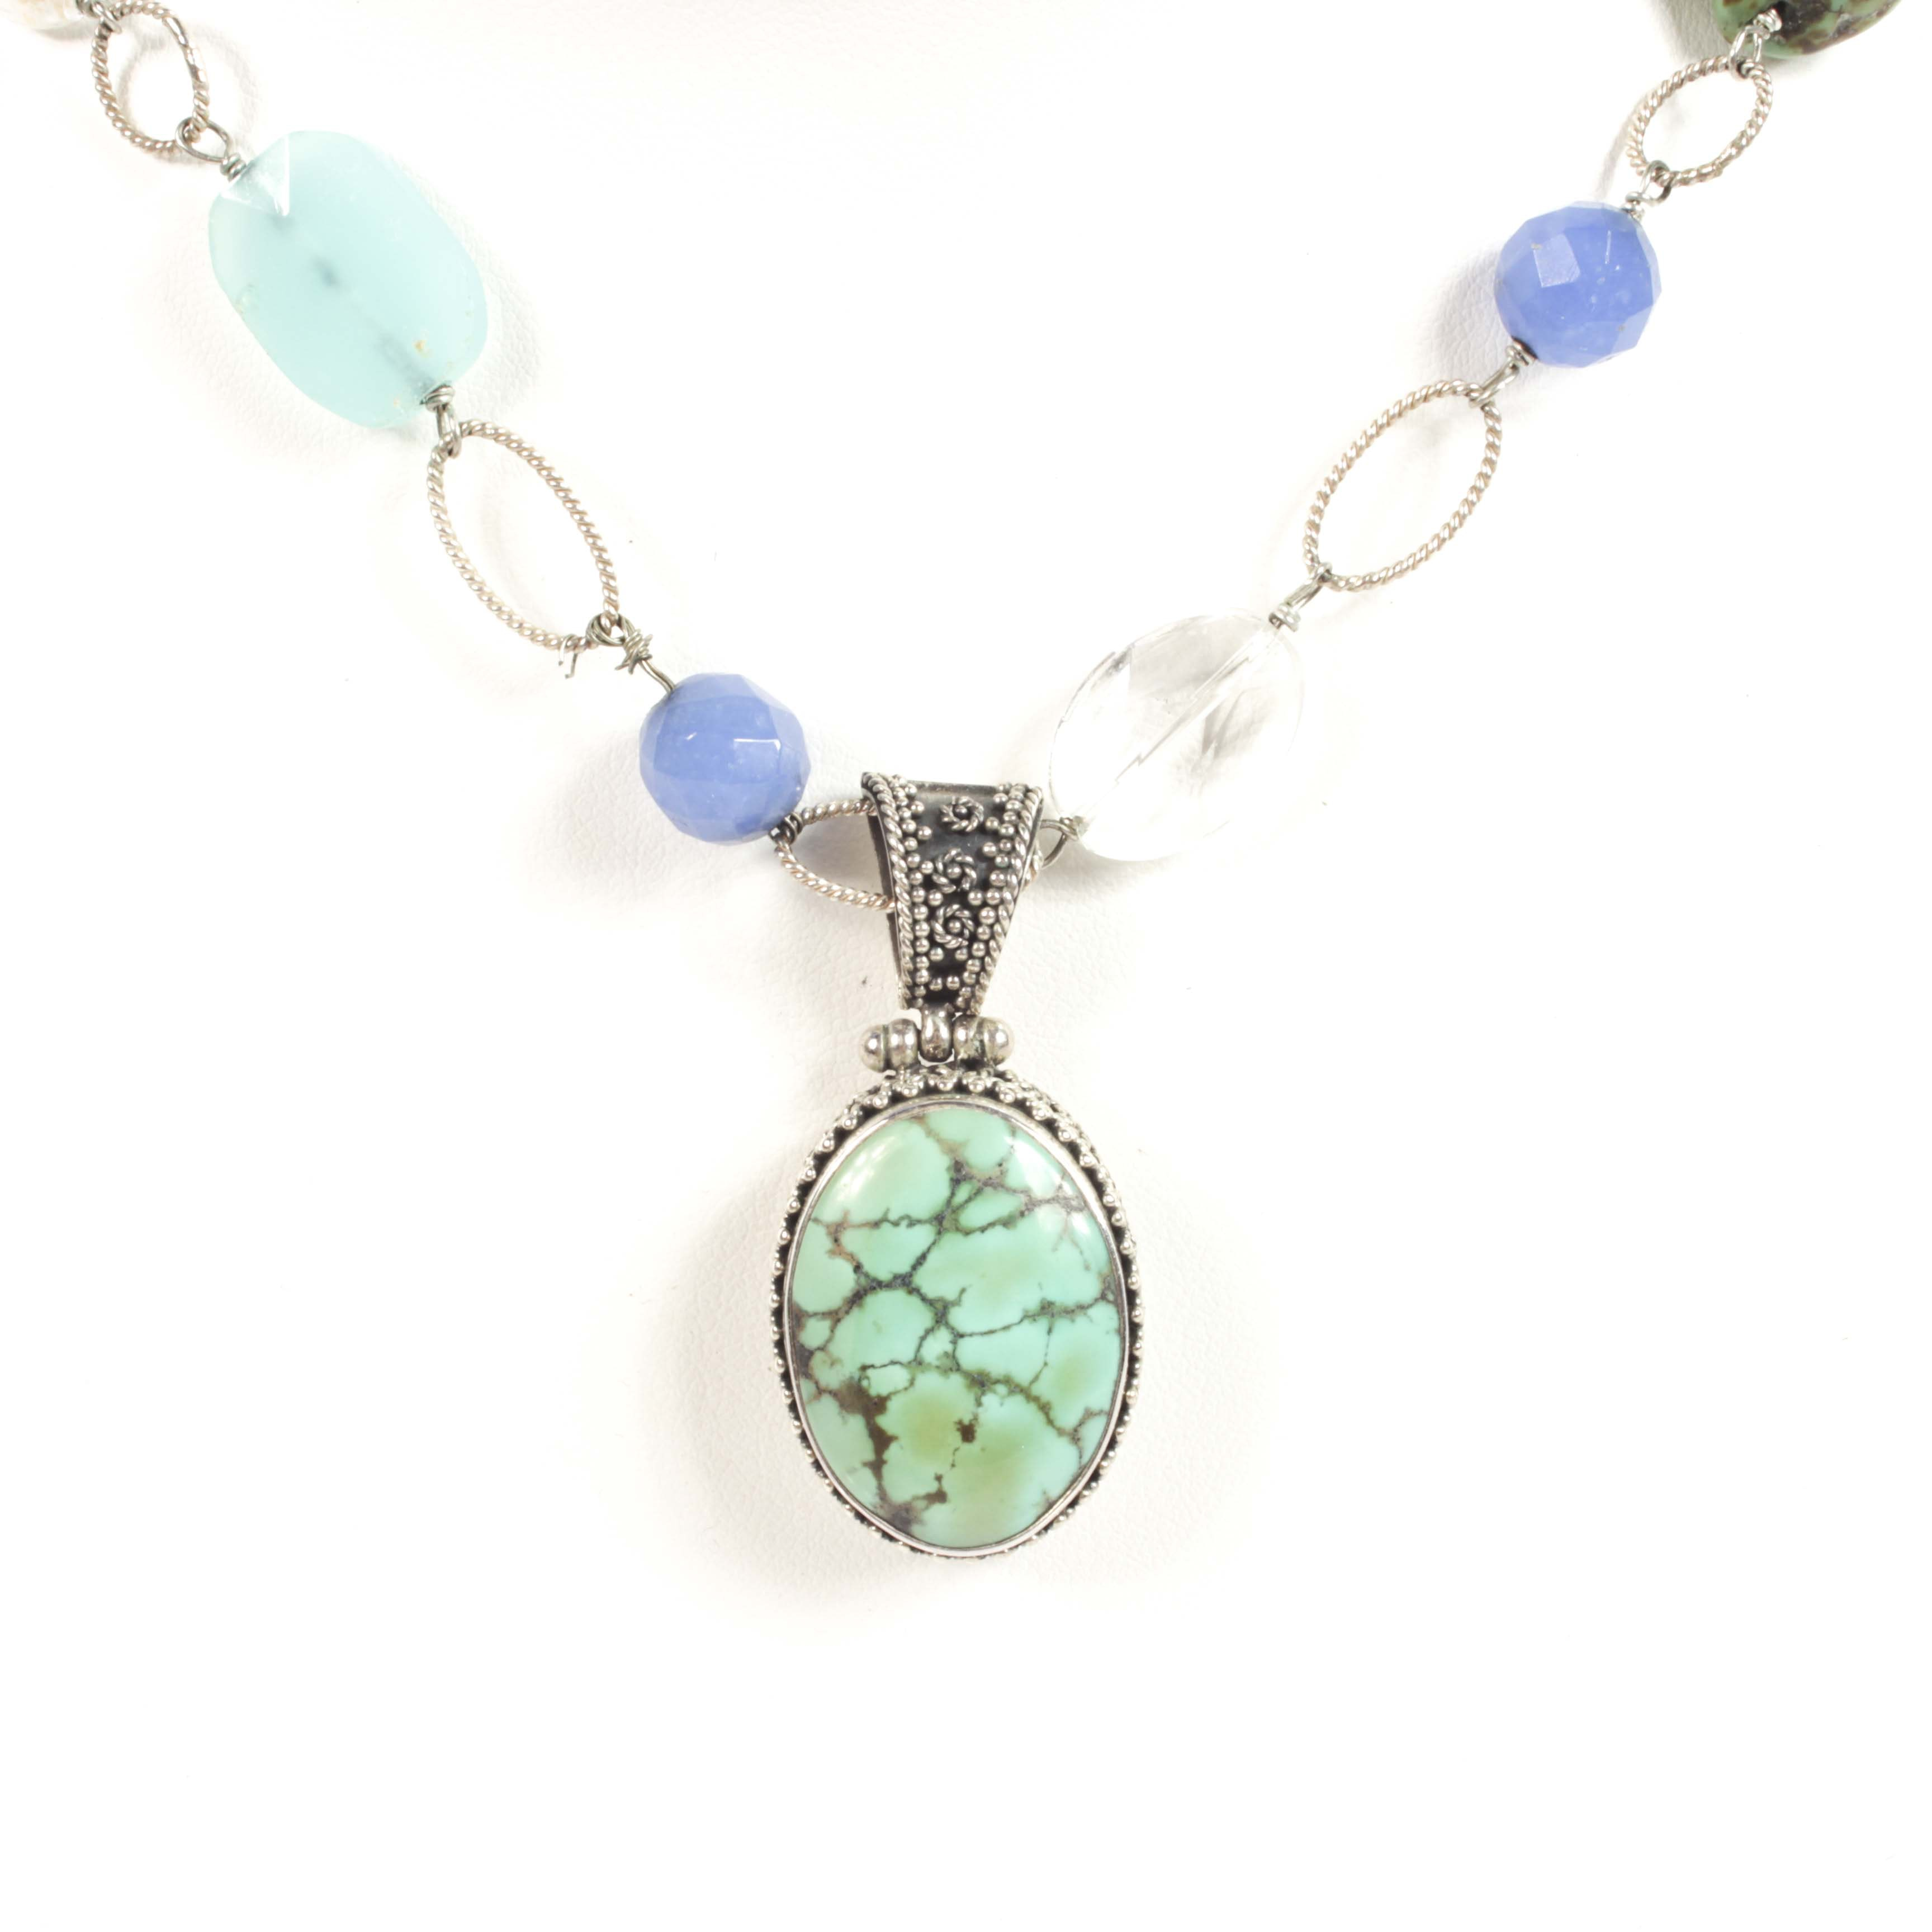 Sterling Silver, Turquoise, Chalcedony and Glass Bead Necklace